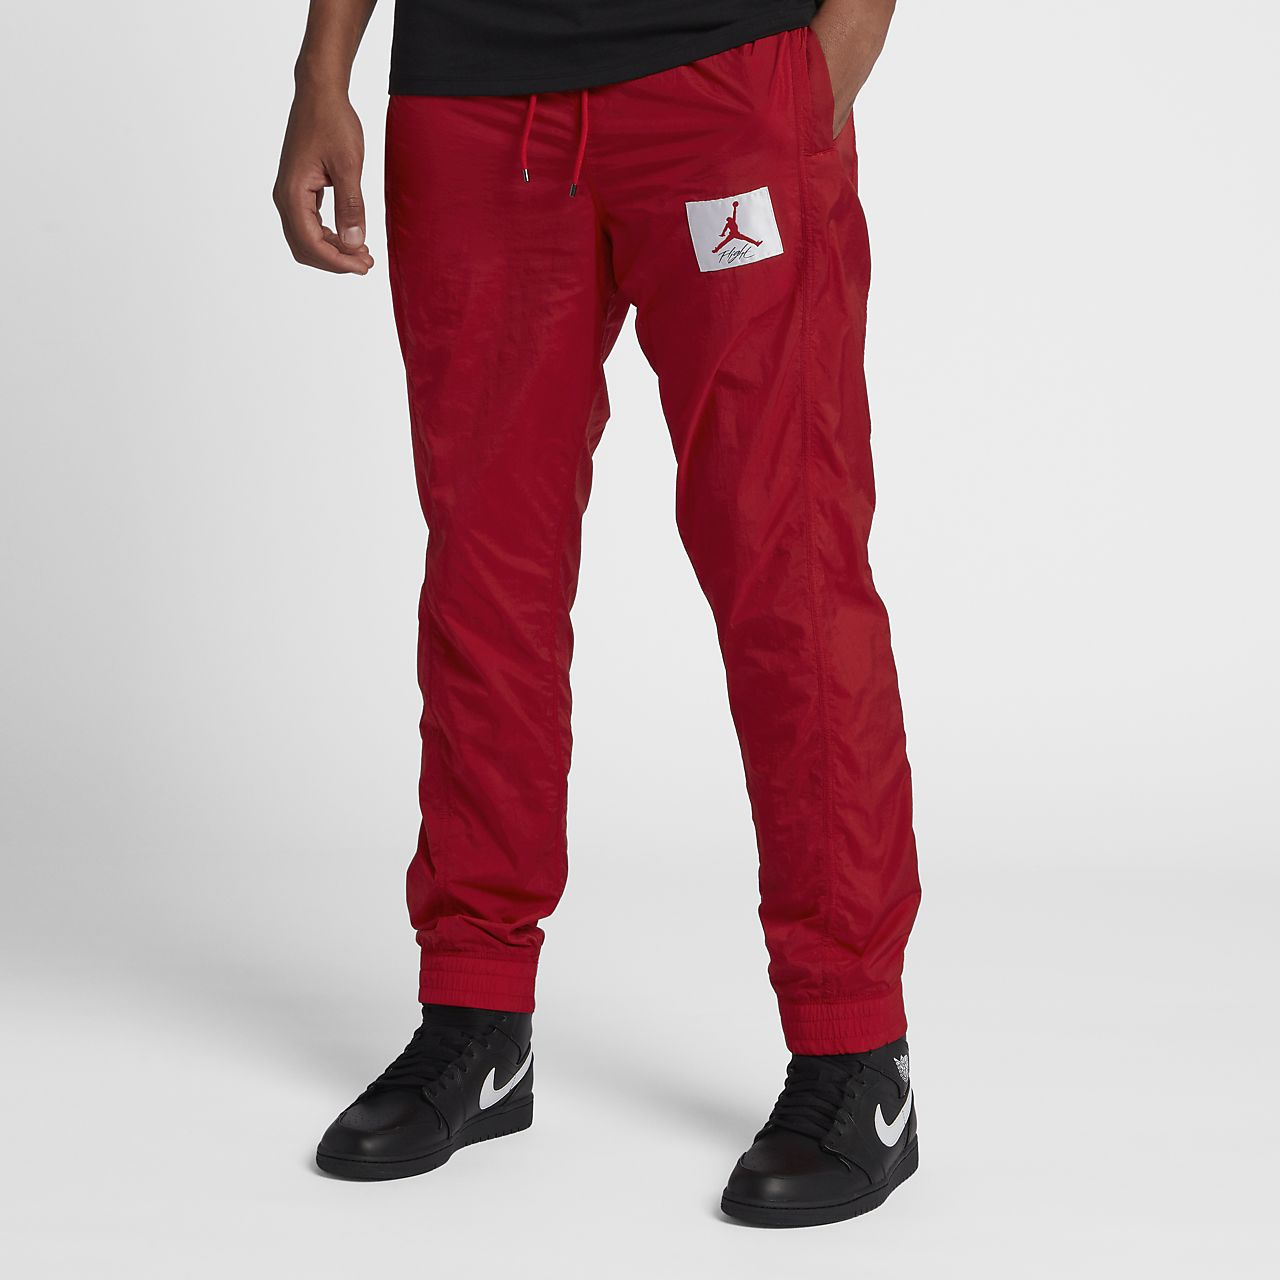 Jordan Sportswear Wings of Flight Men's Pants